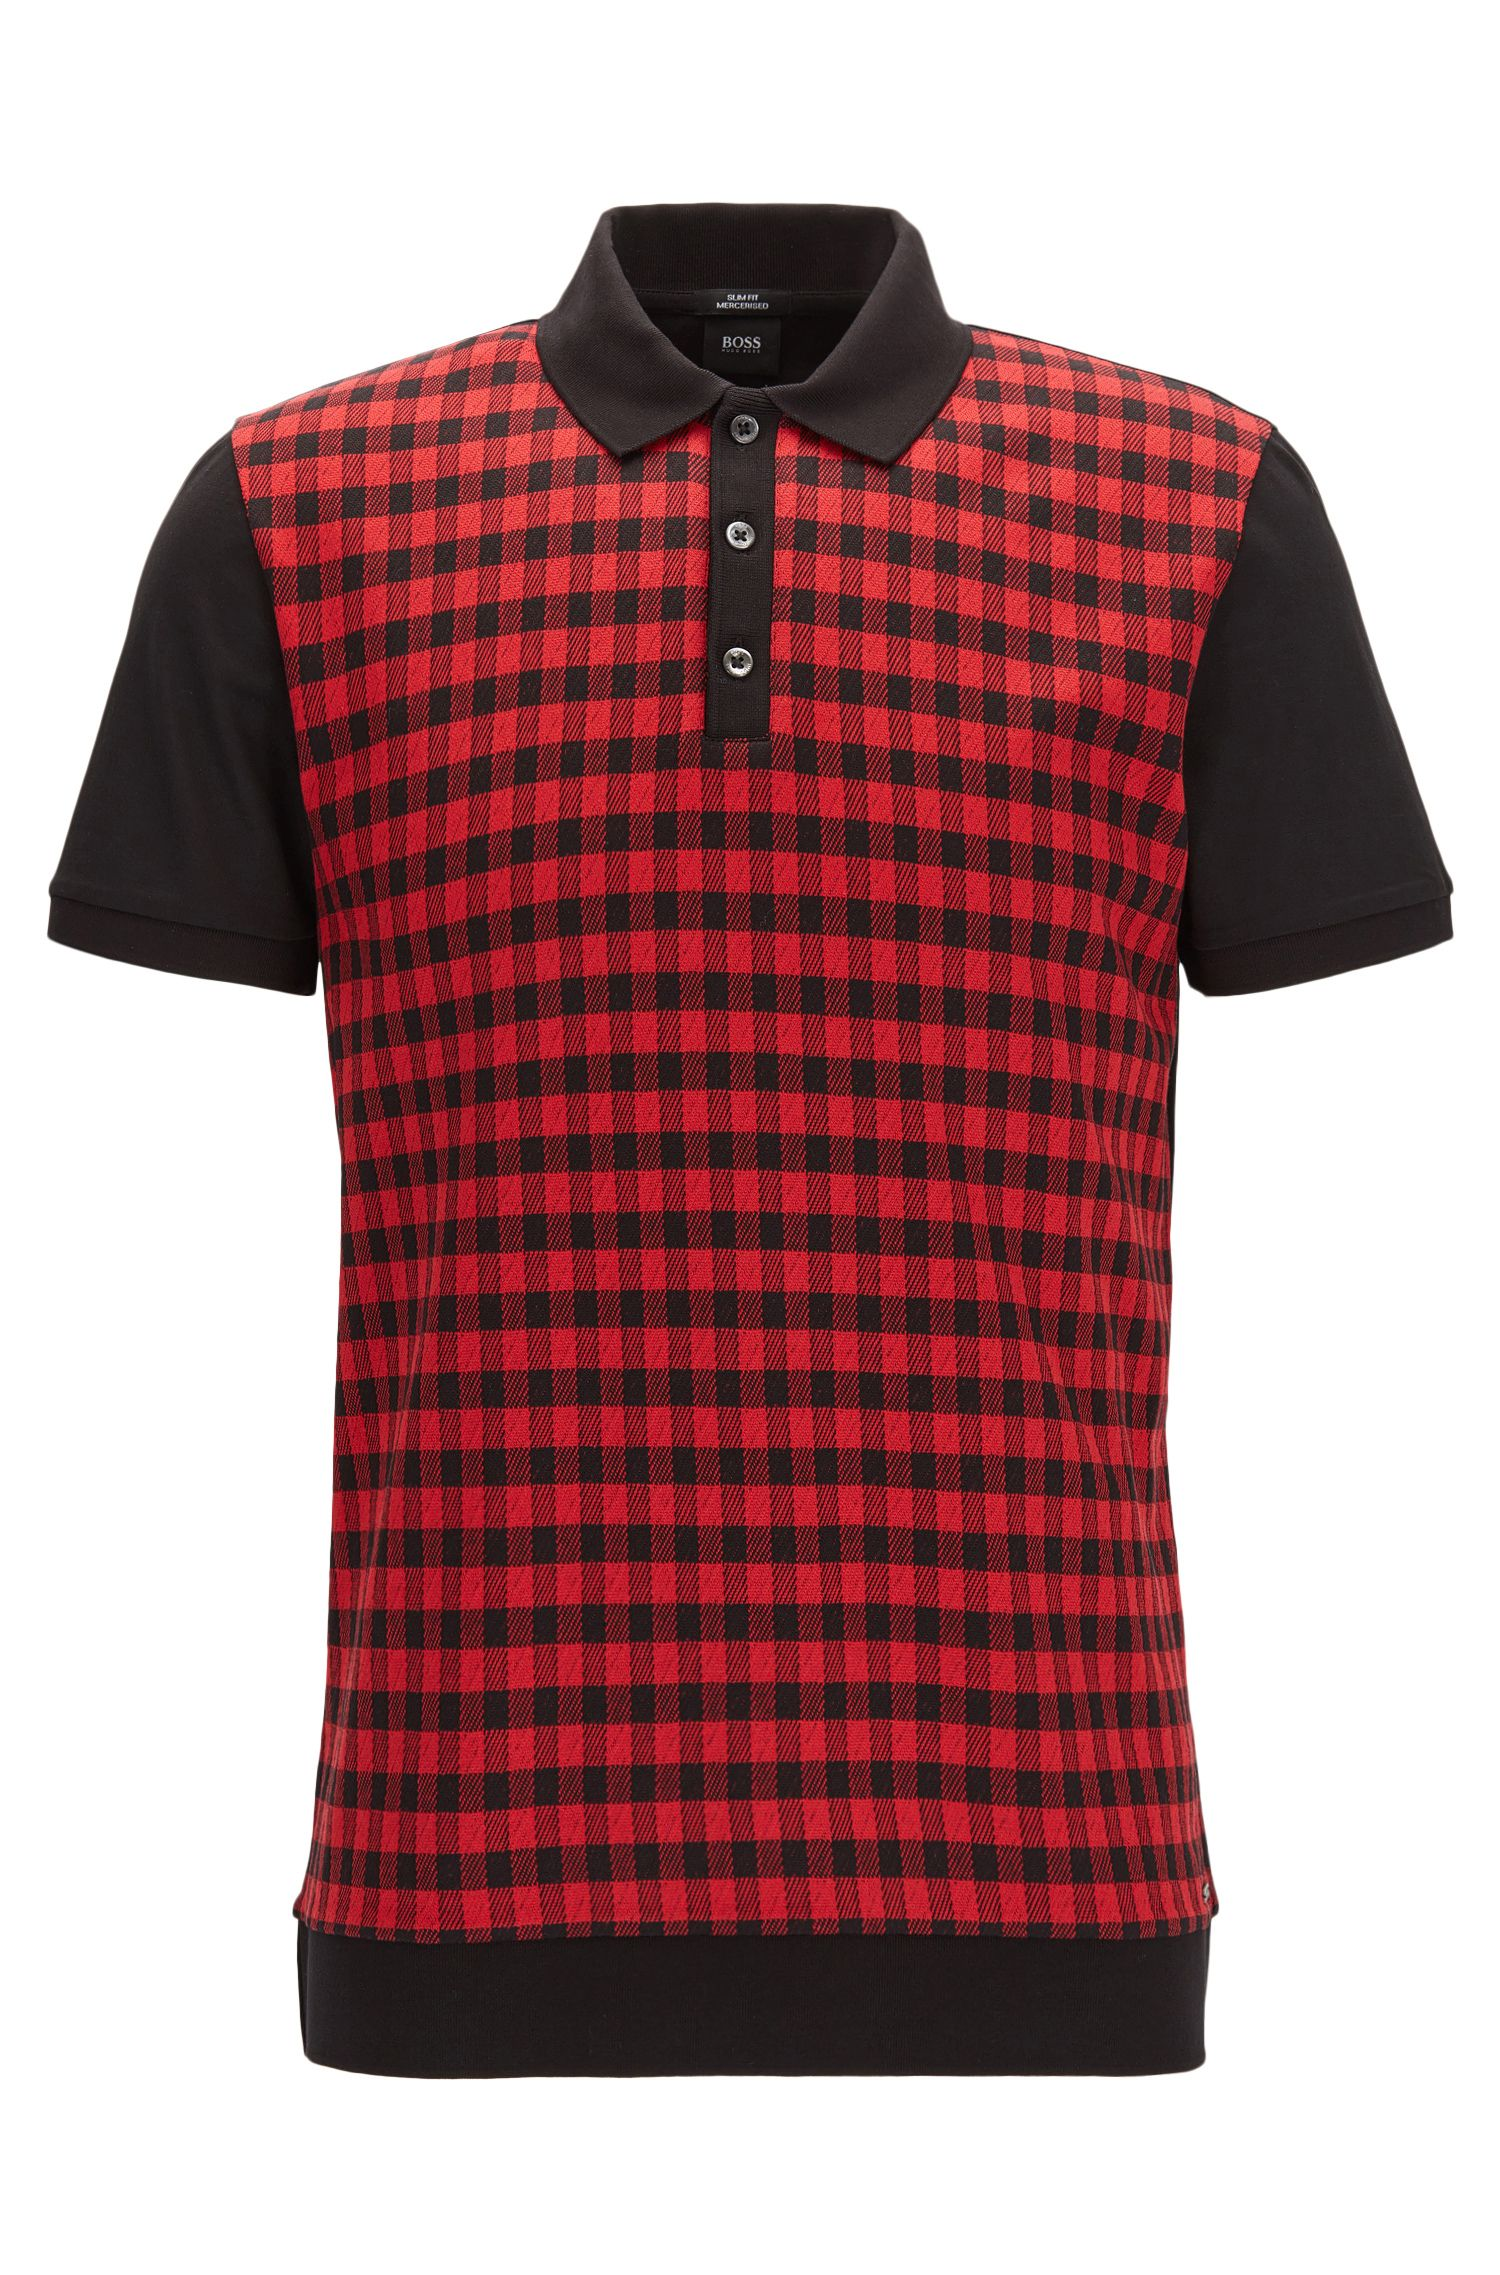 Checked Mercerized Cotton Polo Shirt, Slim Fit | Phillipson